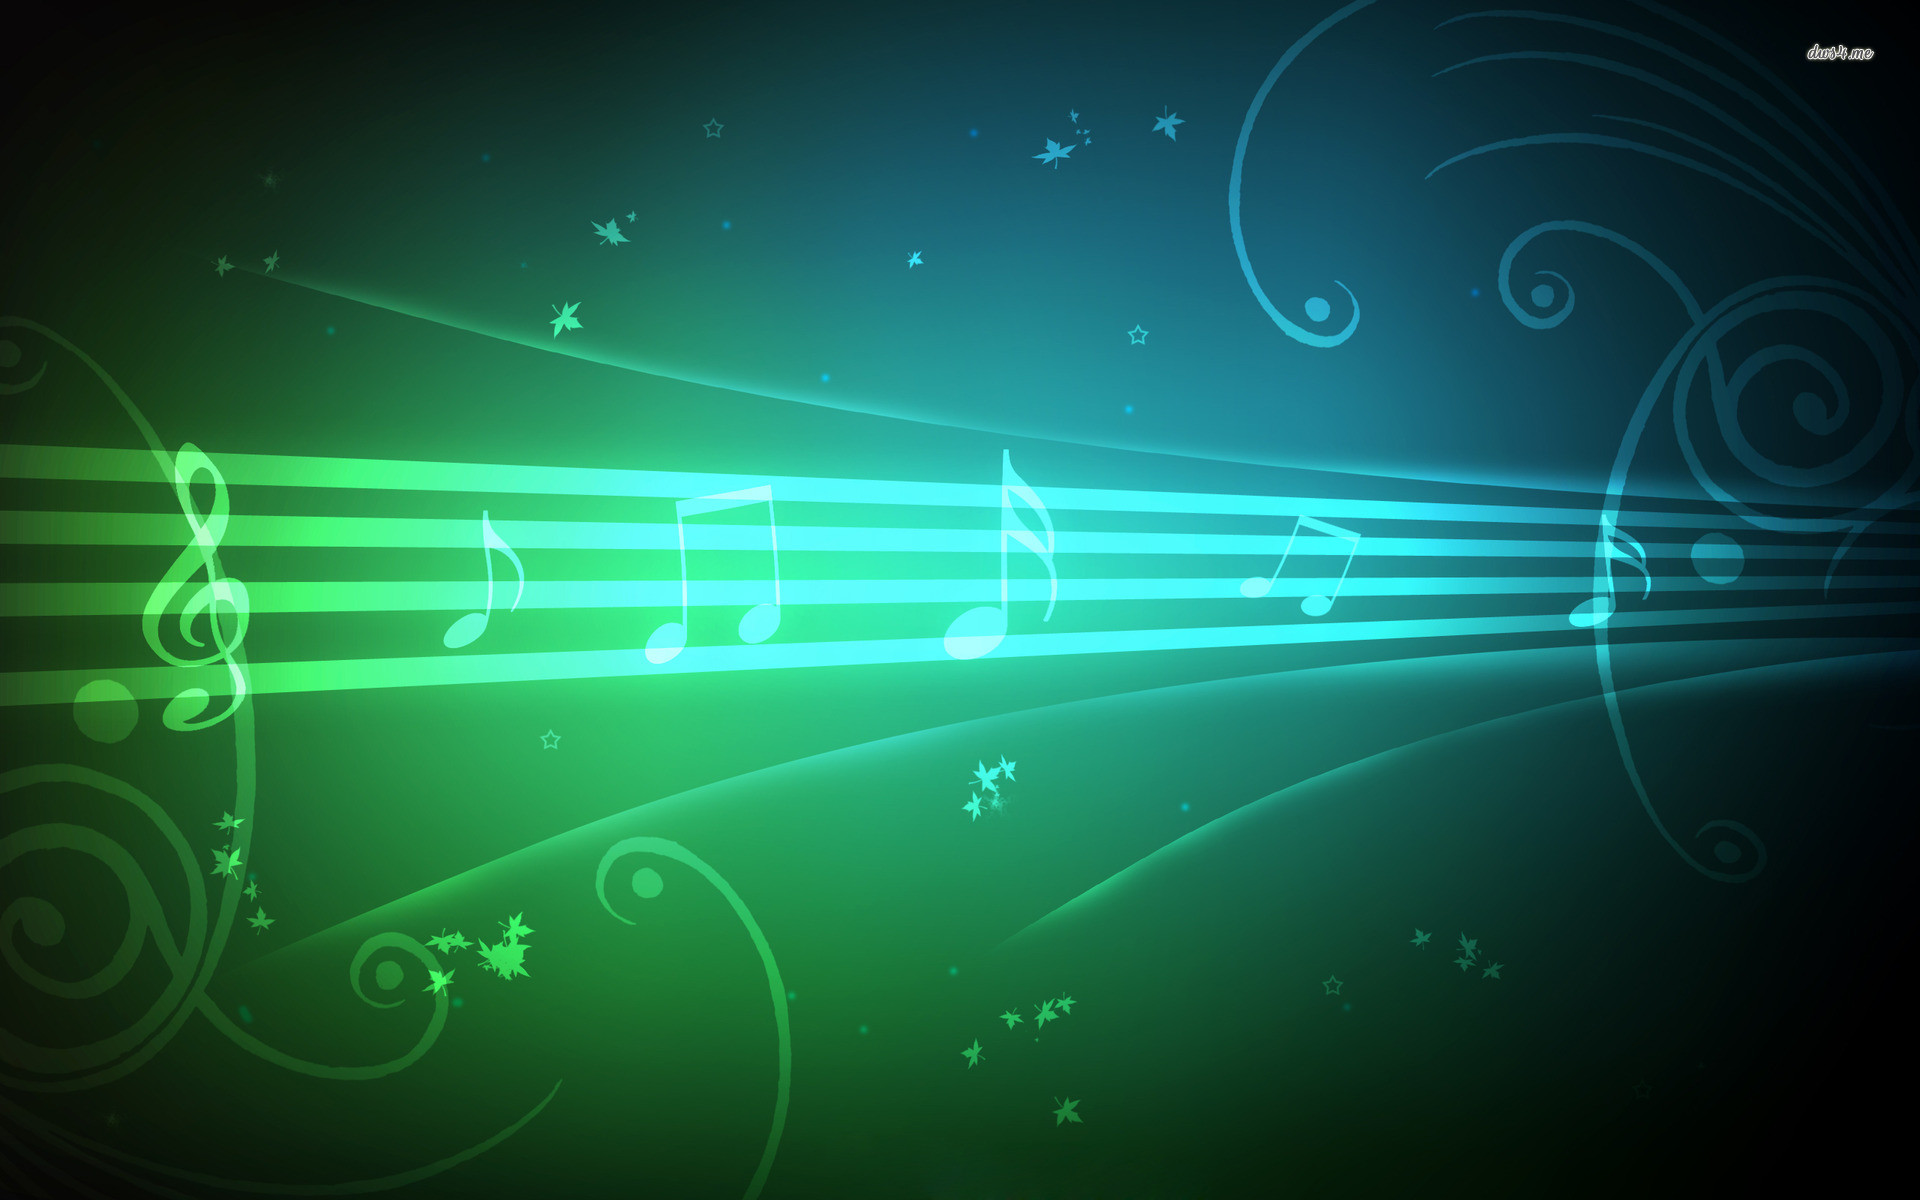 1920x1200 Music Note Notes Wallpaper Mobile Desktop Background Archived at |  Wallpapers 4k | Pinterest | Wallpaper and Desktop backgrounds